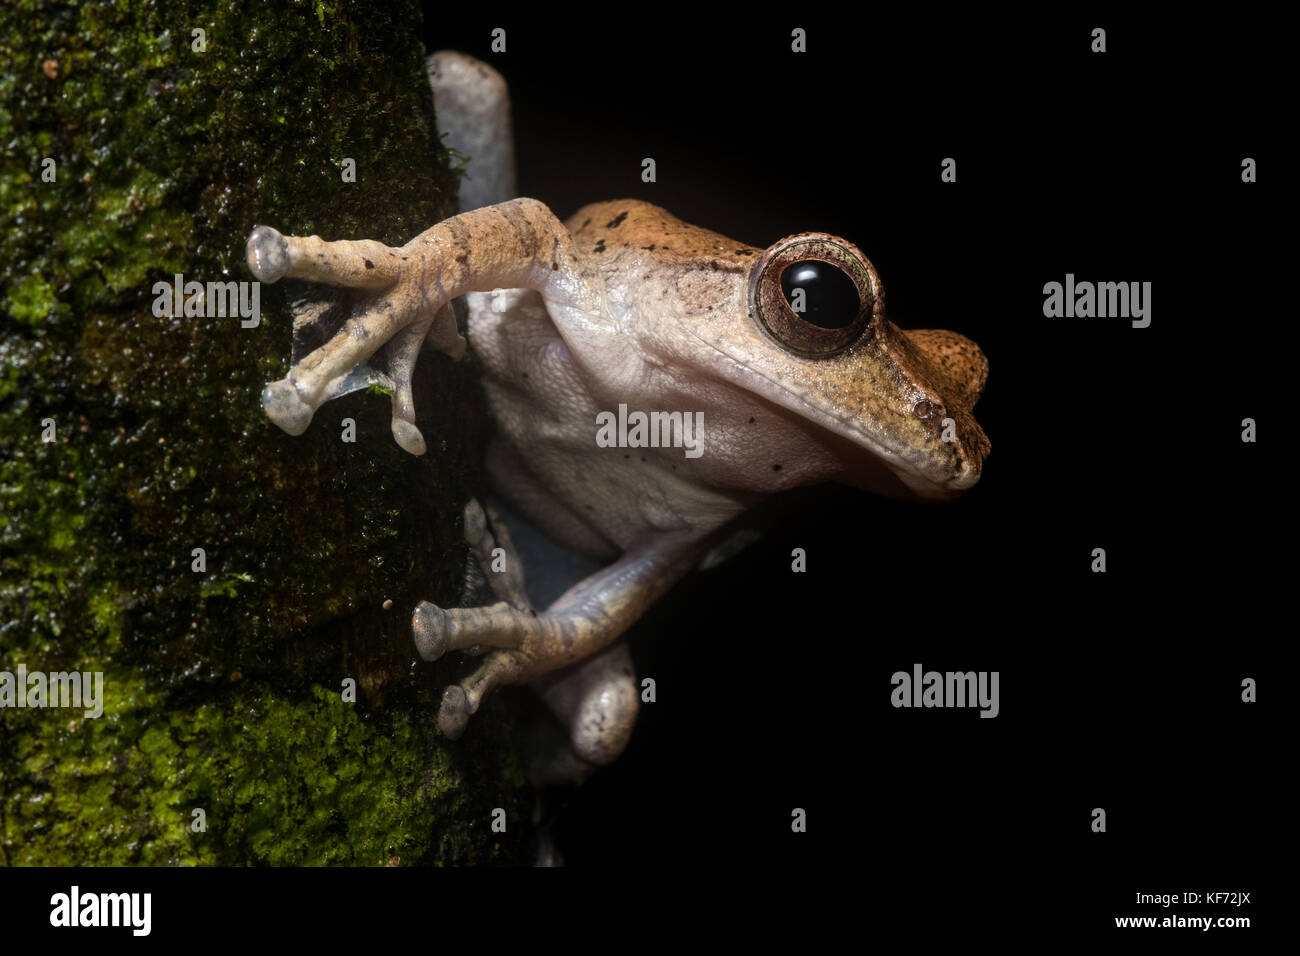 A brown tree frog (Rhacophorus harrissoni) on a branch in a borean jungle. - Stock Image